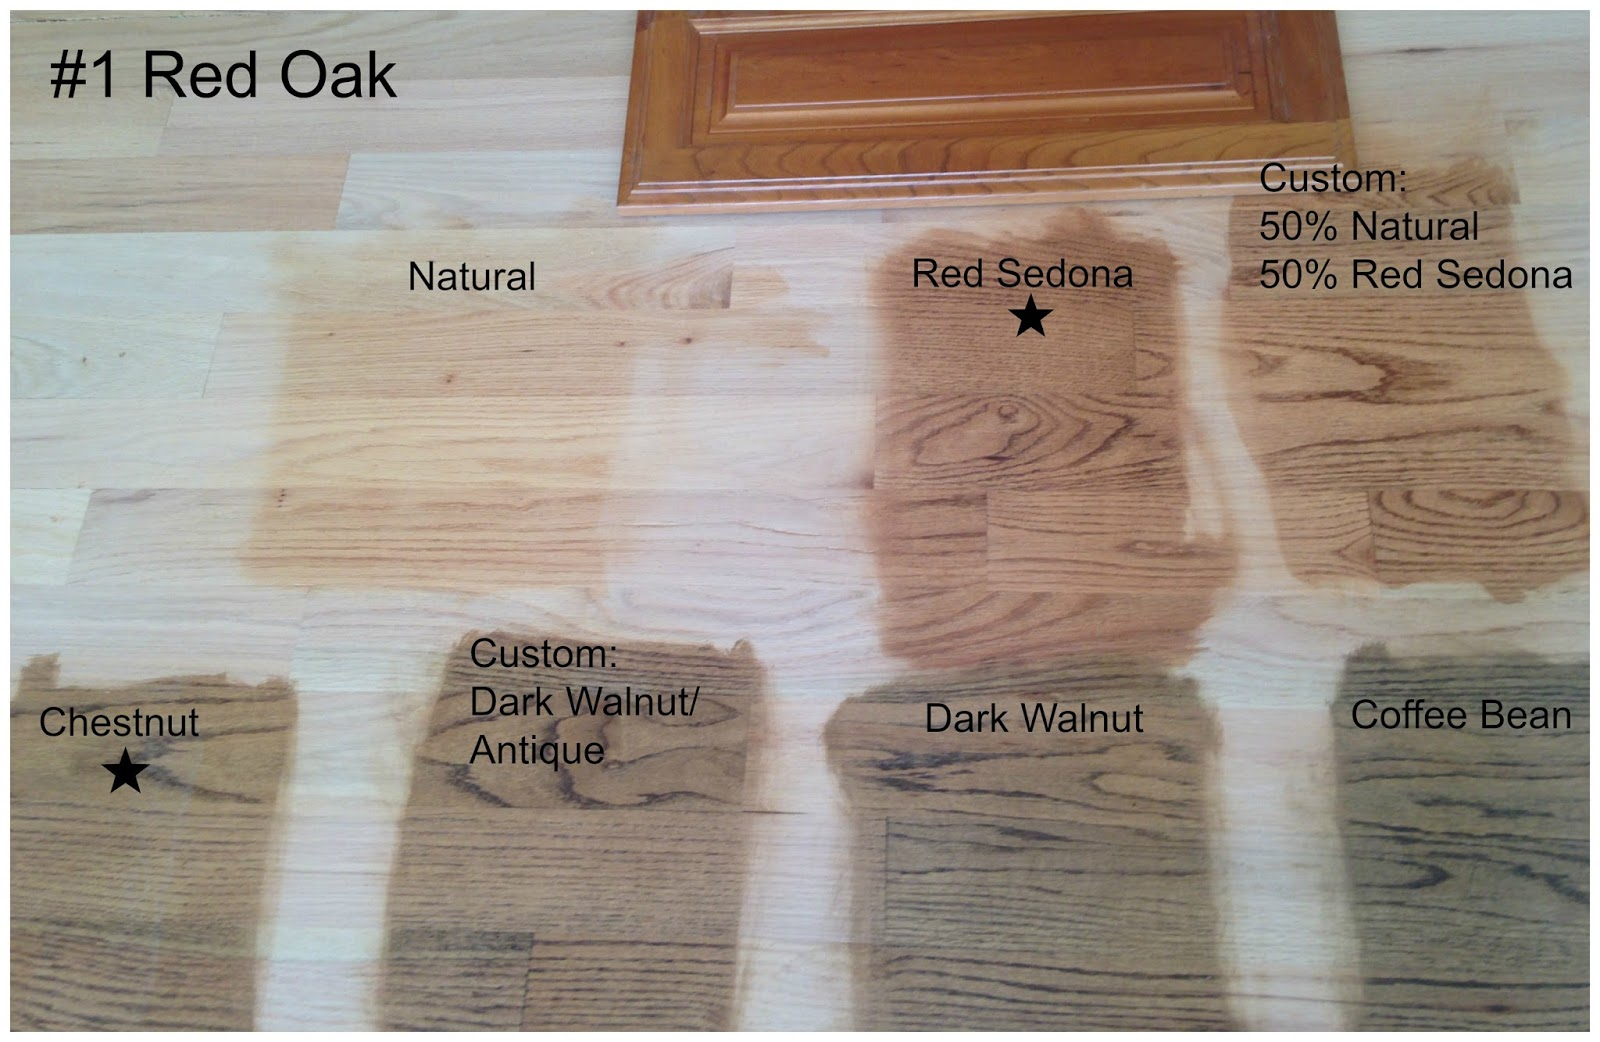 Hardwood Floors Part 2 My Stain Helpful Tips For Choosing The Right